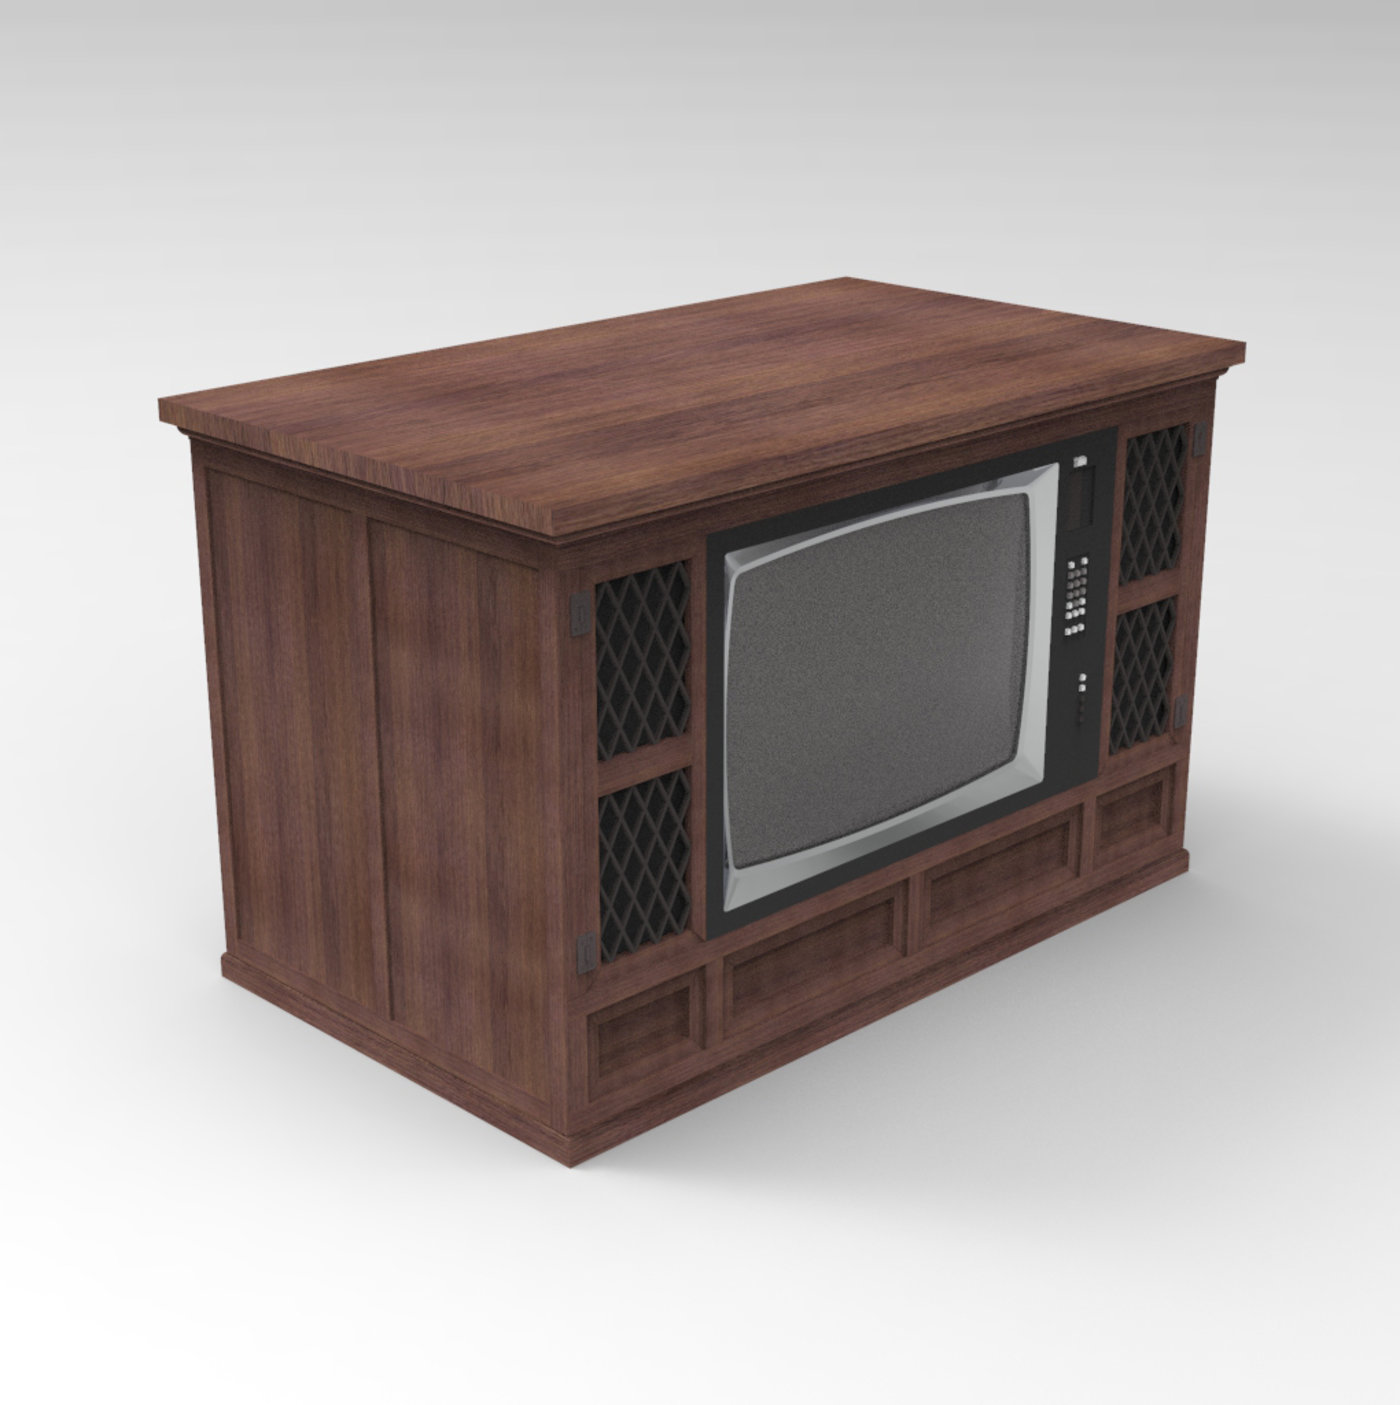 Old wooden console television